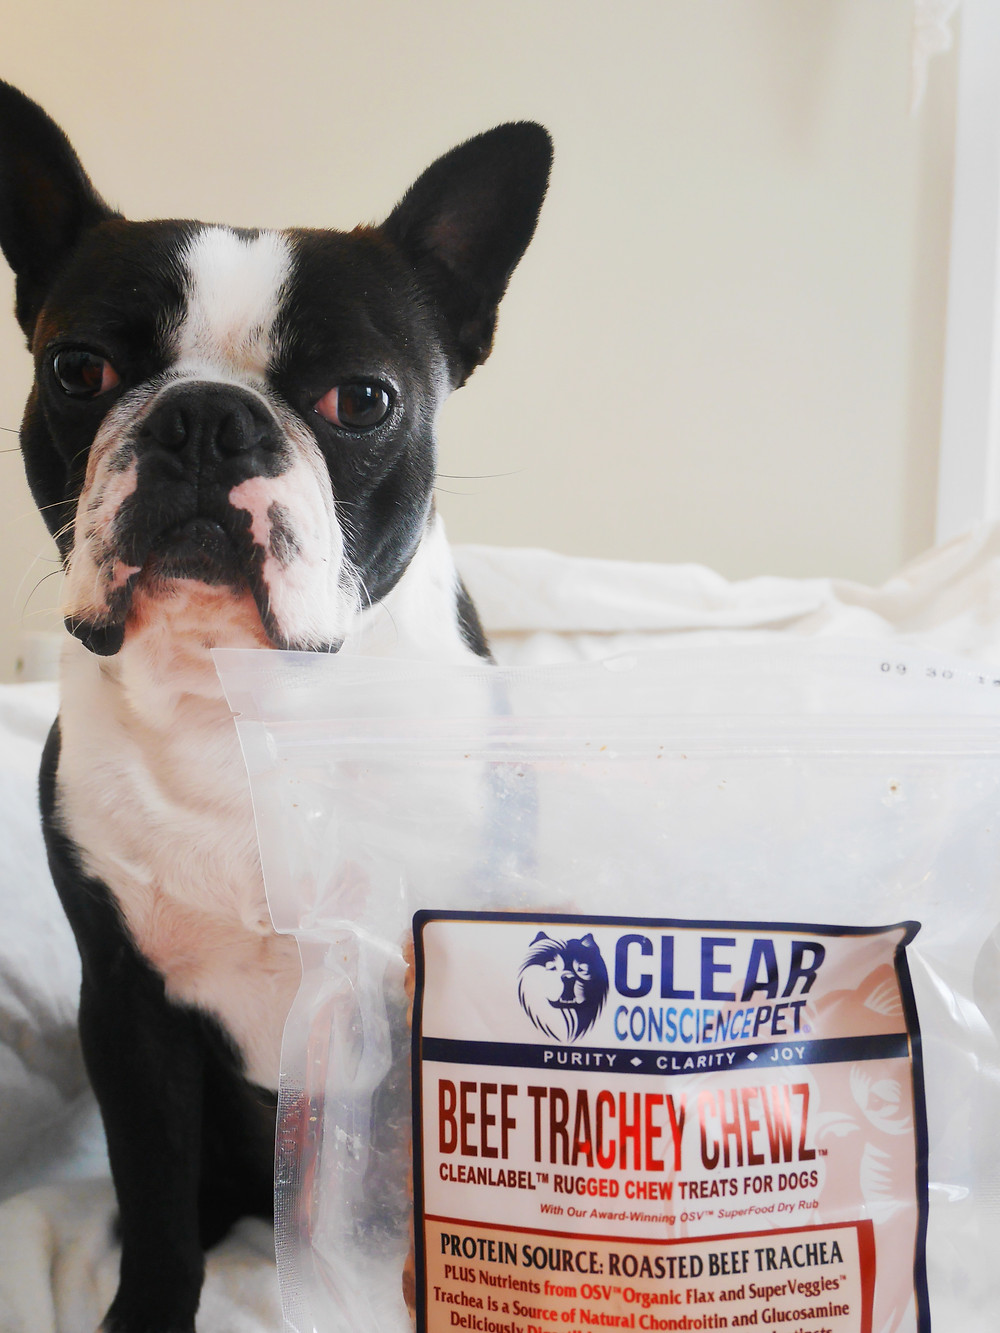 Yoda & Beef Trachey Chewz by Clear Conscience Pet